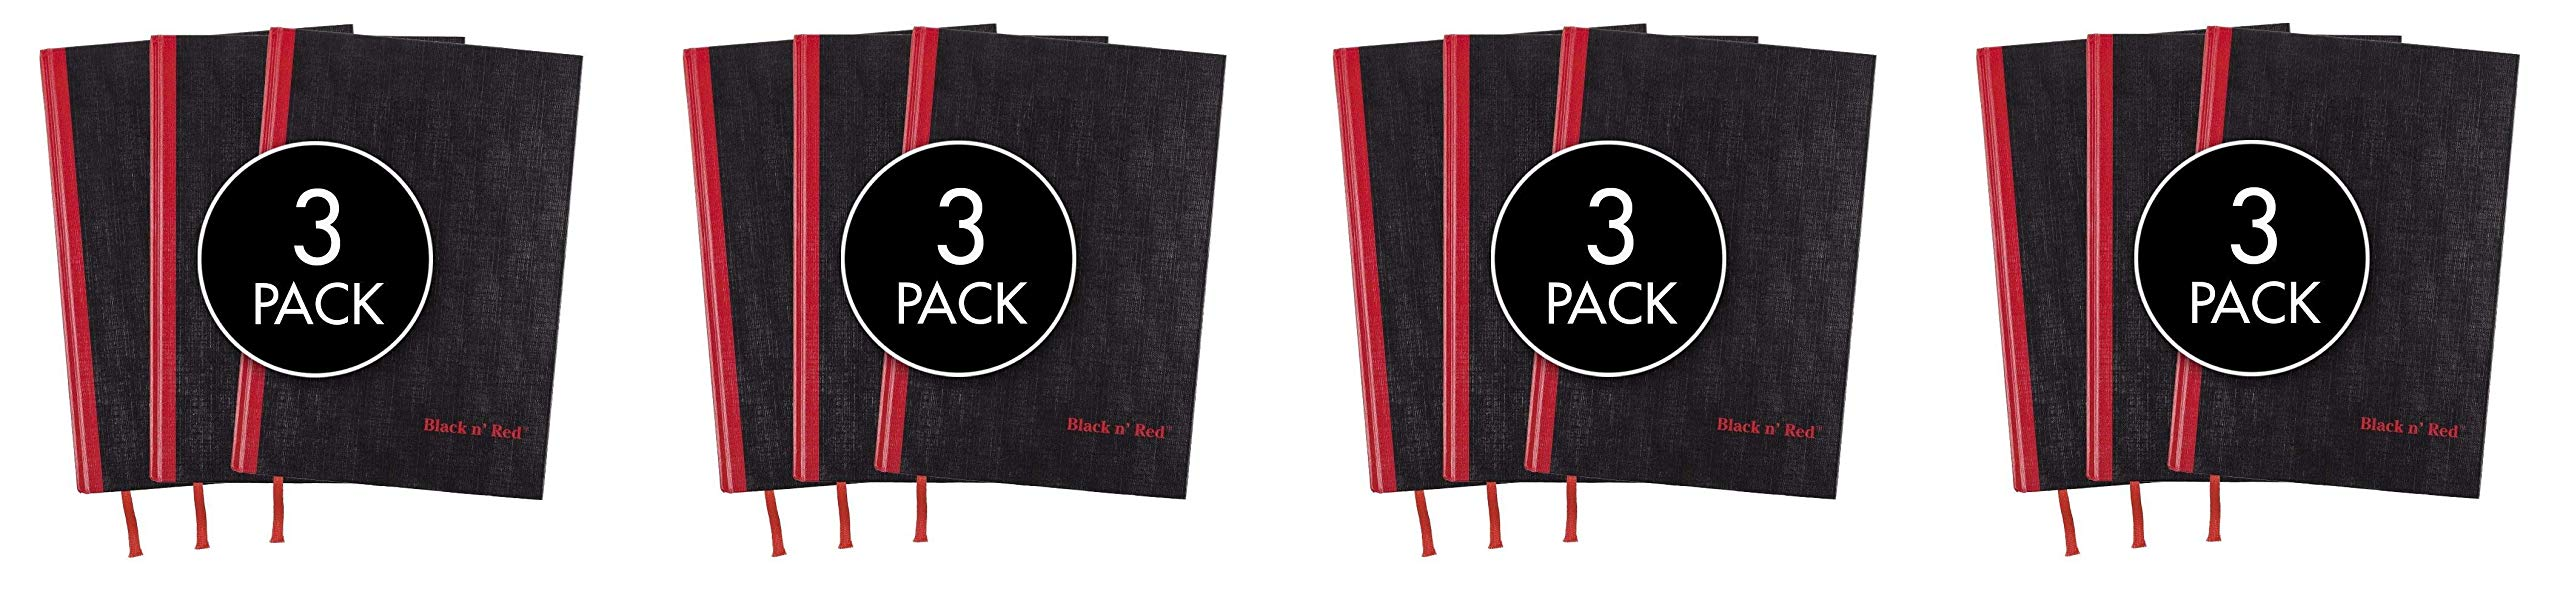 Black n' Red Casebound Hardcover Notebooks, 11-3/4'' x 8-1/4'', Black/Red, 96 Ruled Sheets, 3-Pack (73601) (Fоur Paсk) by Black n' Red (Image #1)